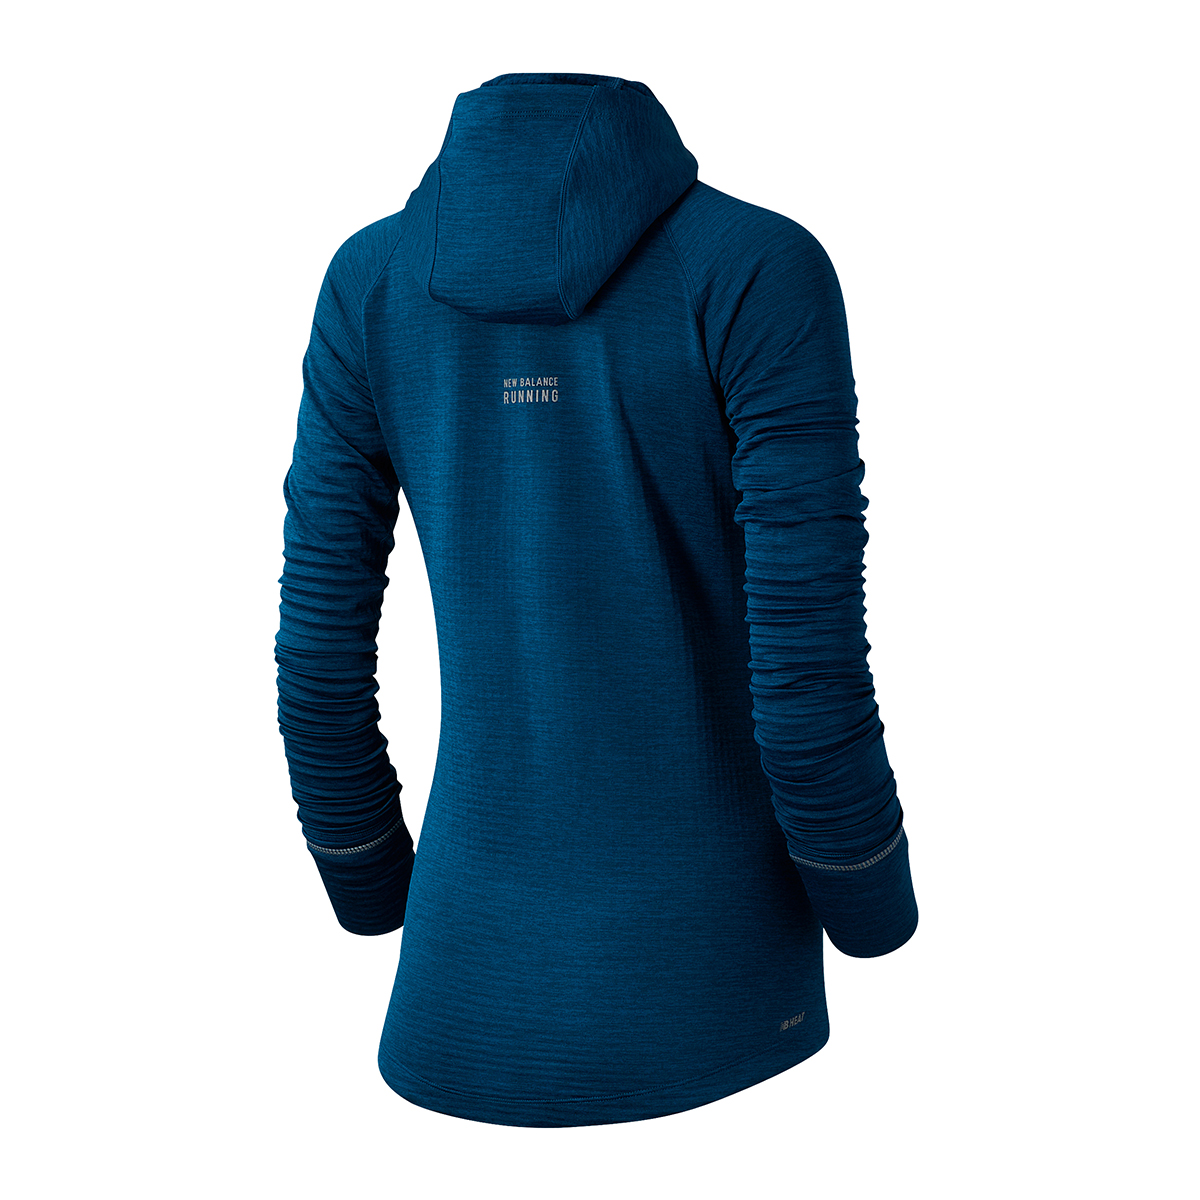 Women's New Balance Heat Grid Hoodie - Color: Rogue Wave - Size: XS, Rogue Wave, large, image 2